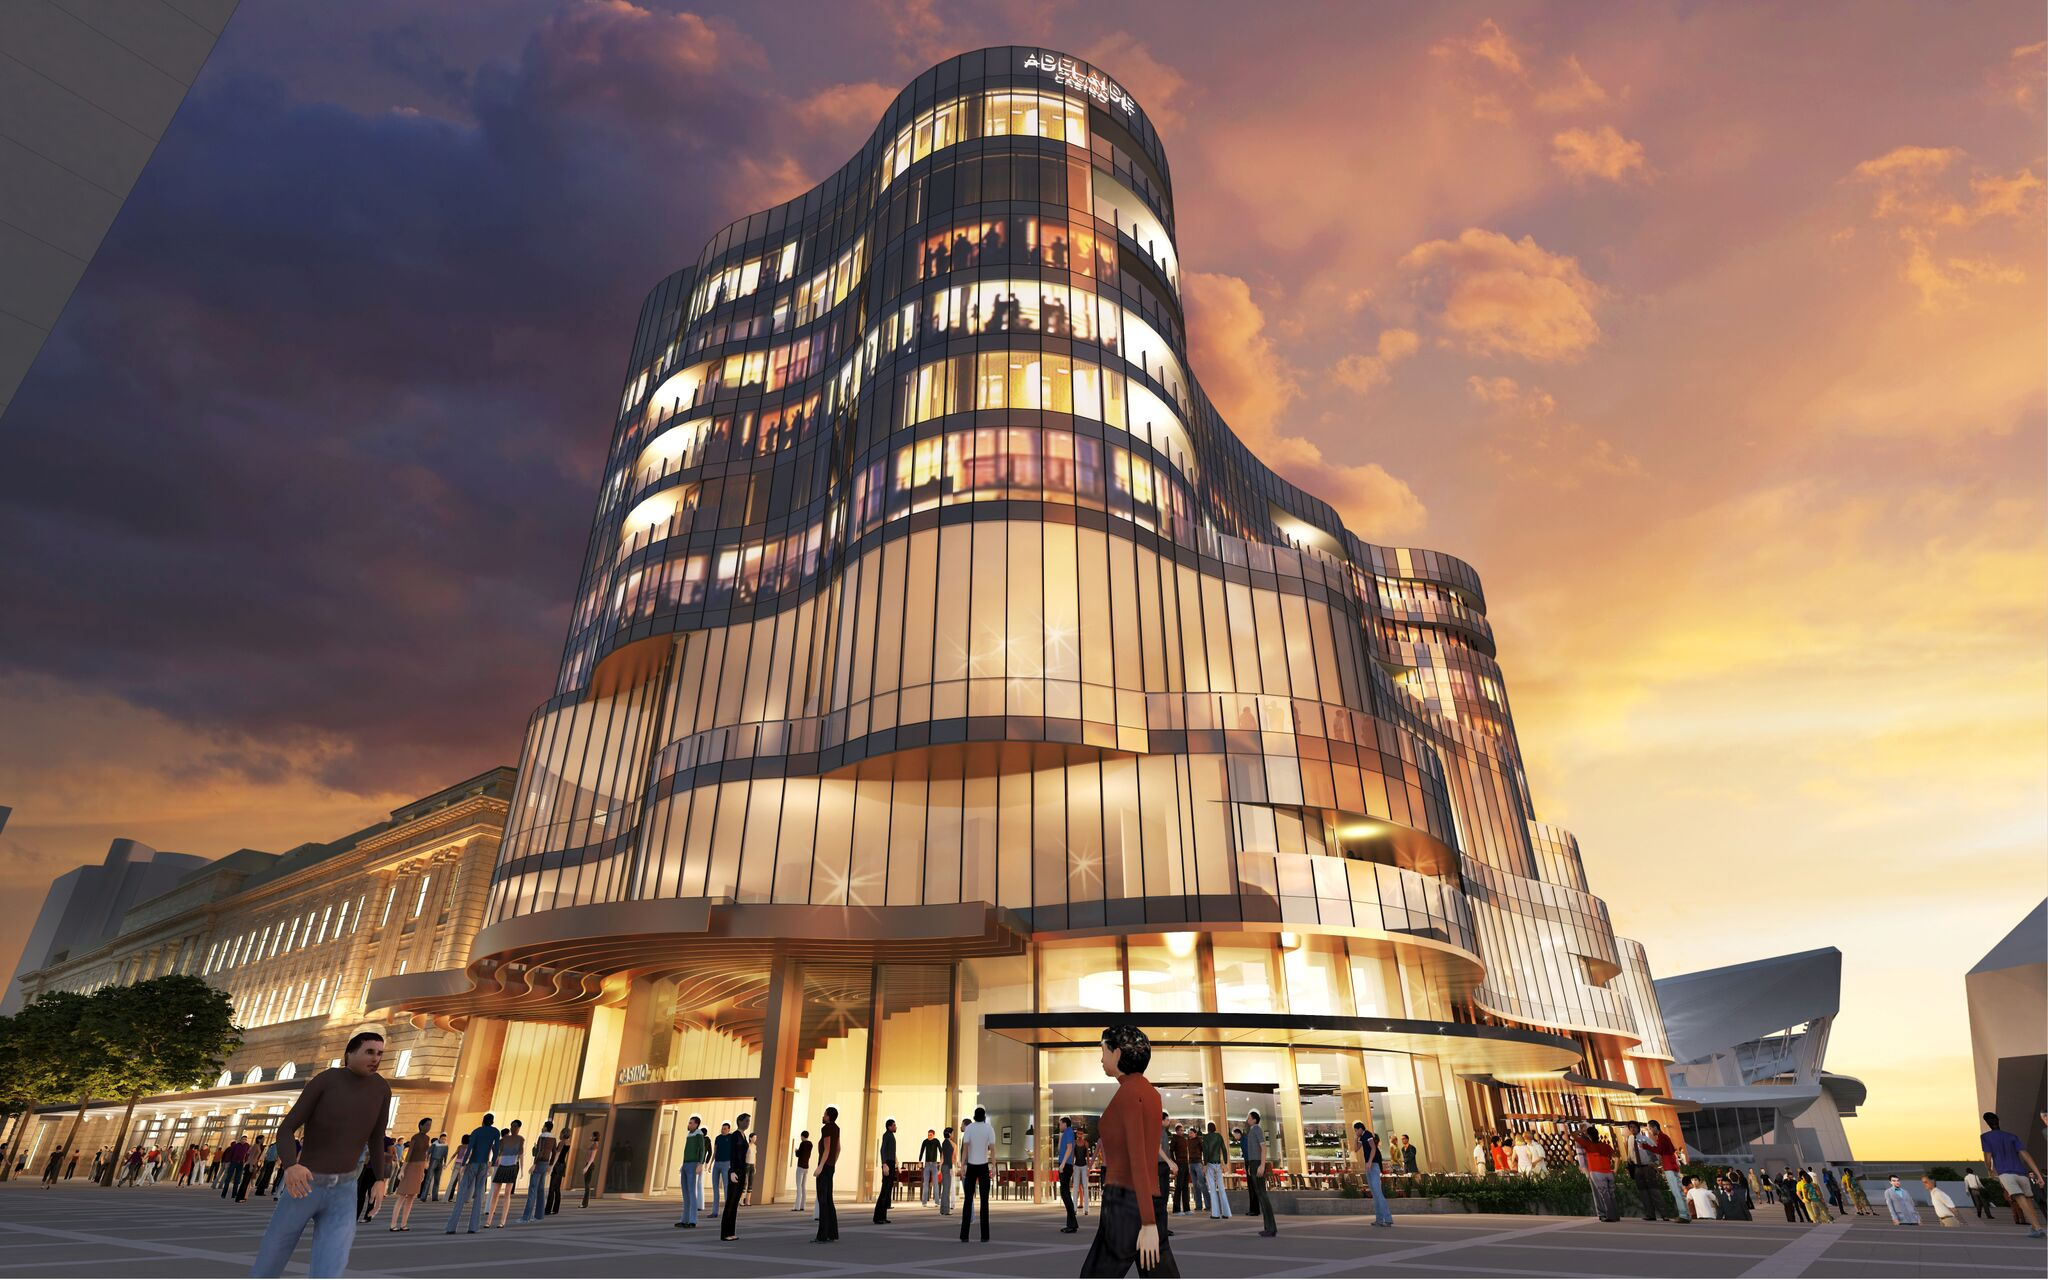 New Adelaide Casino